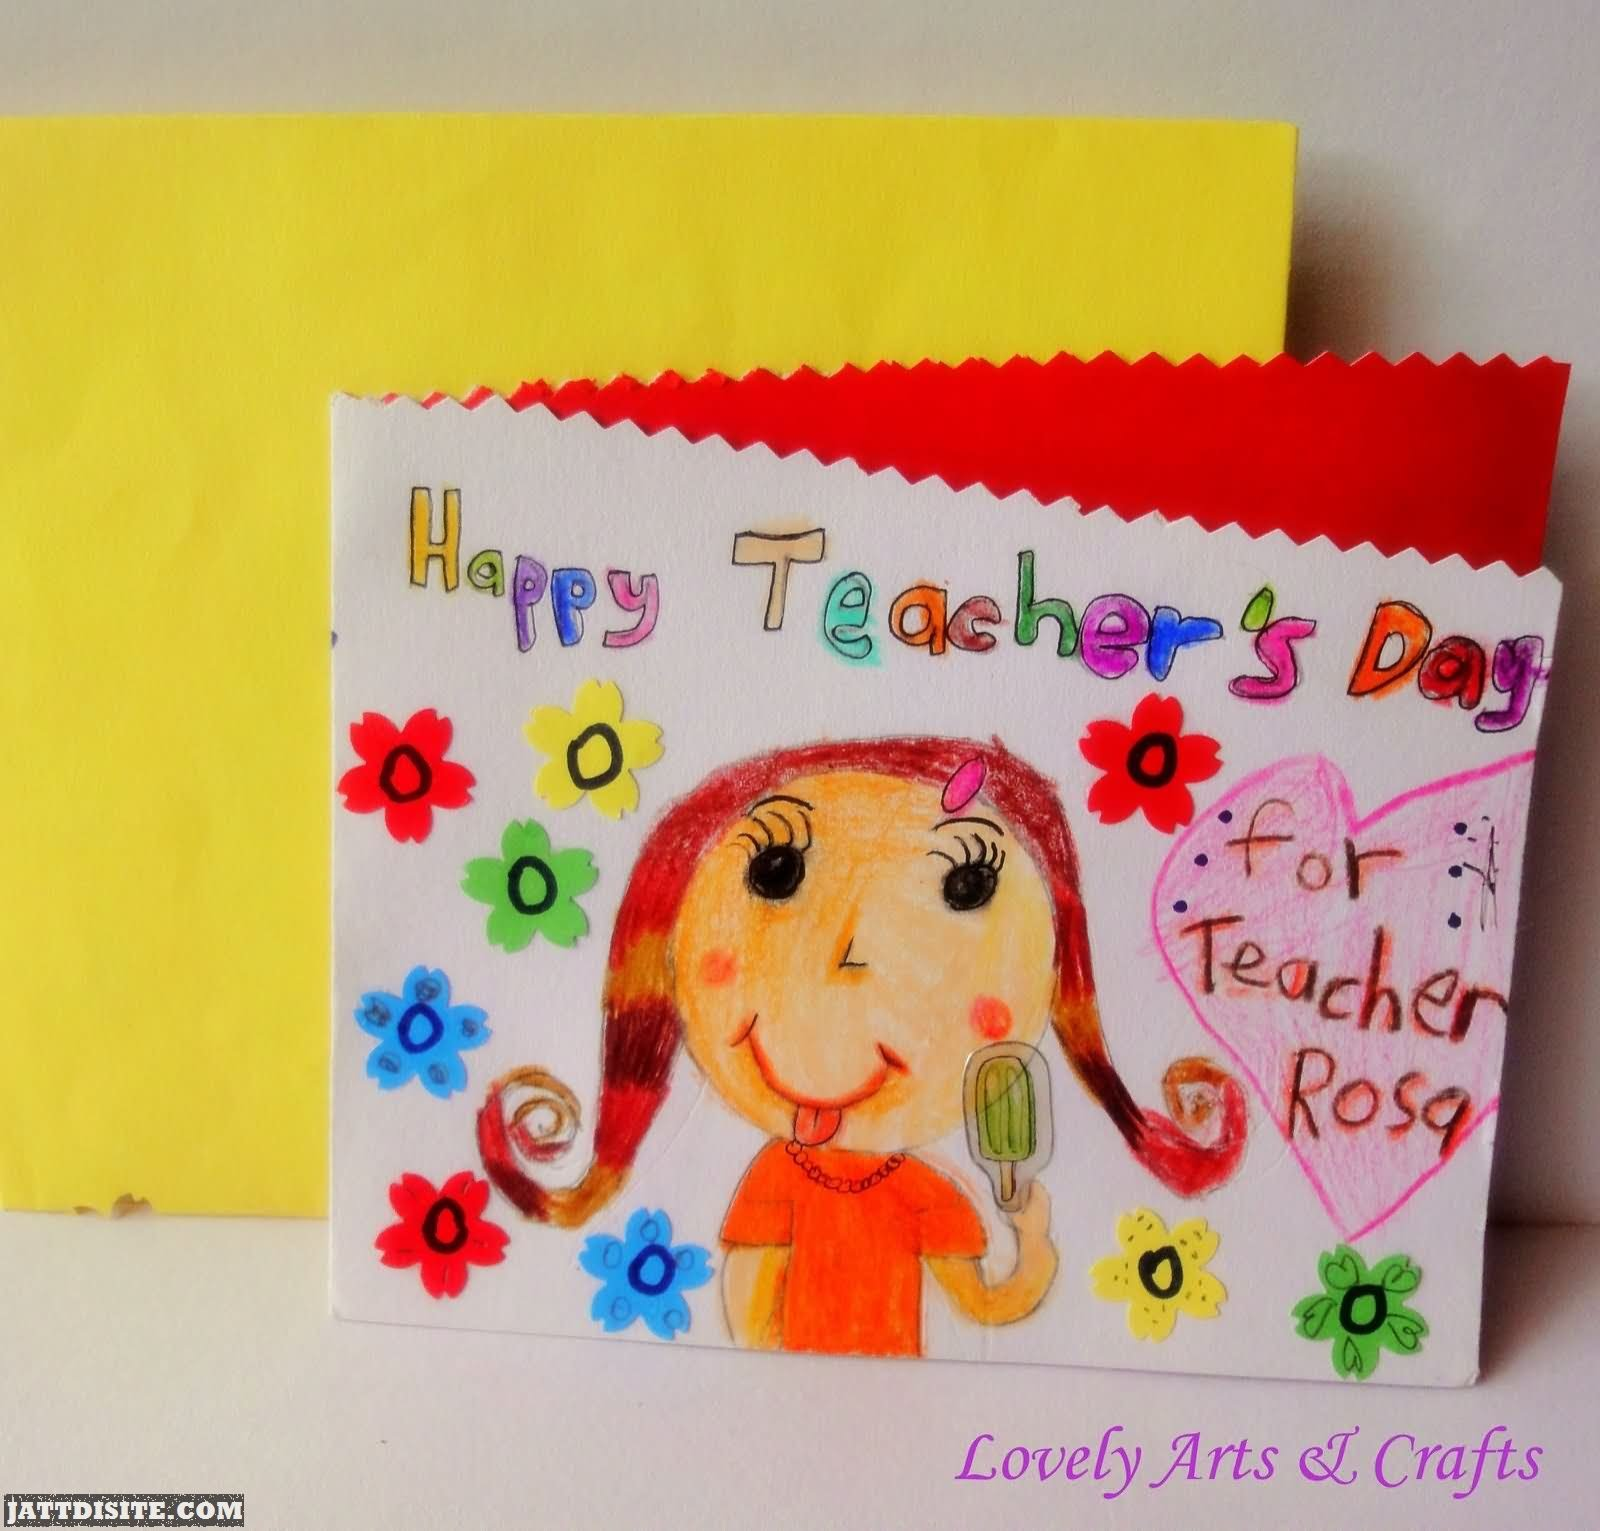 50 Beautiful Teachers Day Greeting Card Pictures And Images